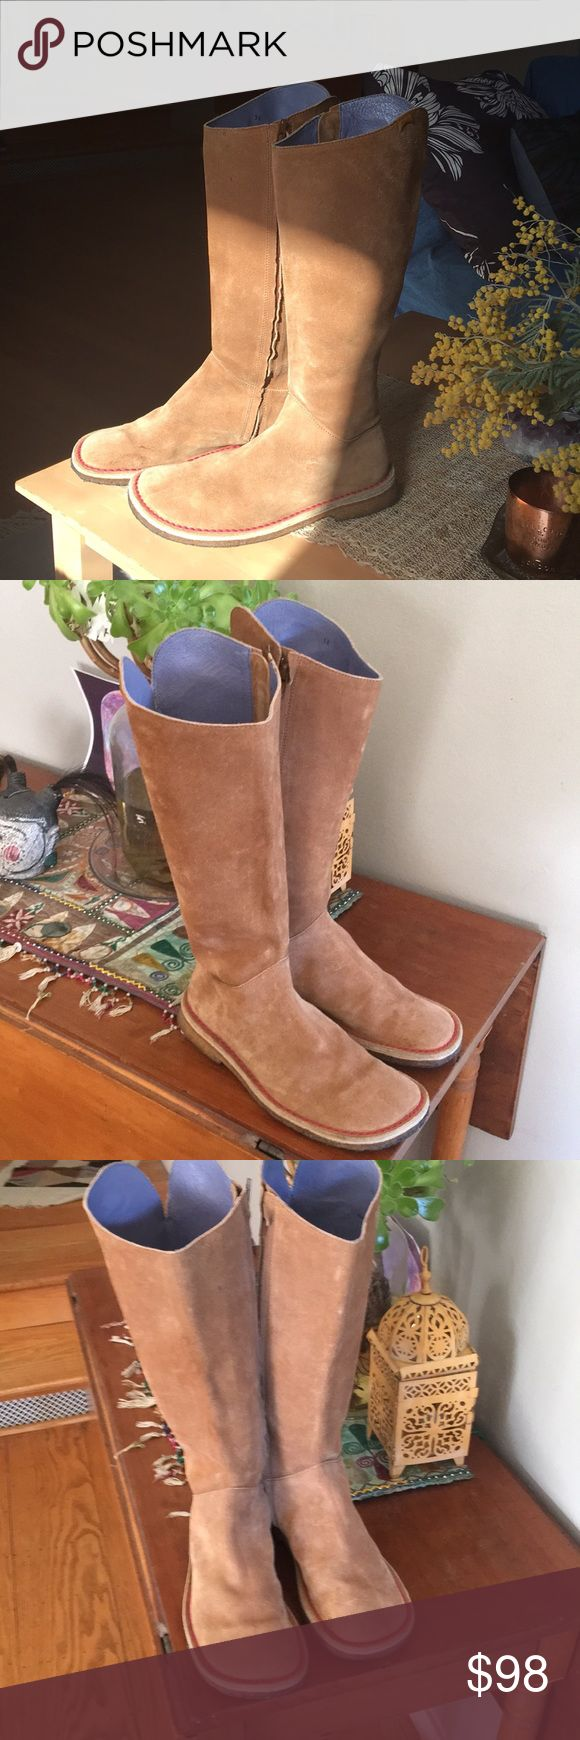 Camper Tall Suede Boots Tan/Camel Size 38/8US Camper Boots Tan/Camel Suede Size 38/8US Knee high zipper boots with lavender lining and gum soles. In great shape gently used. Camper Shoes